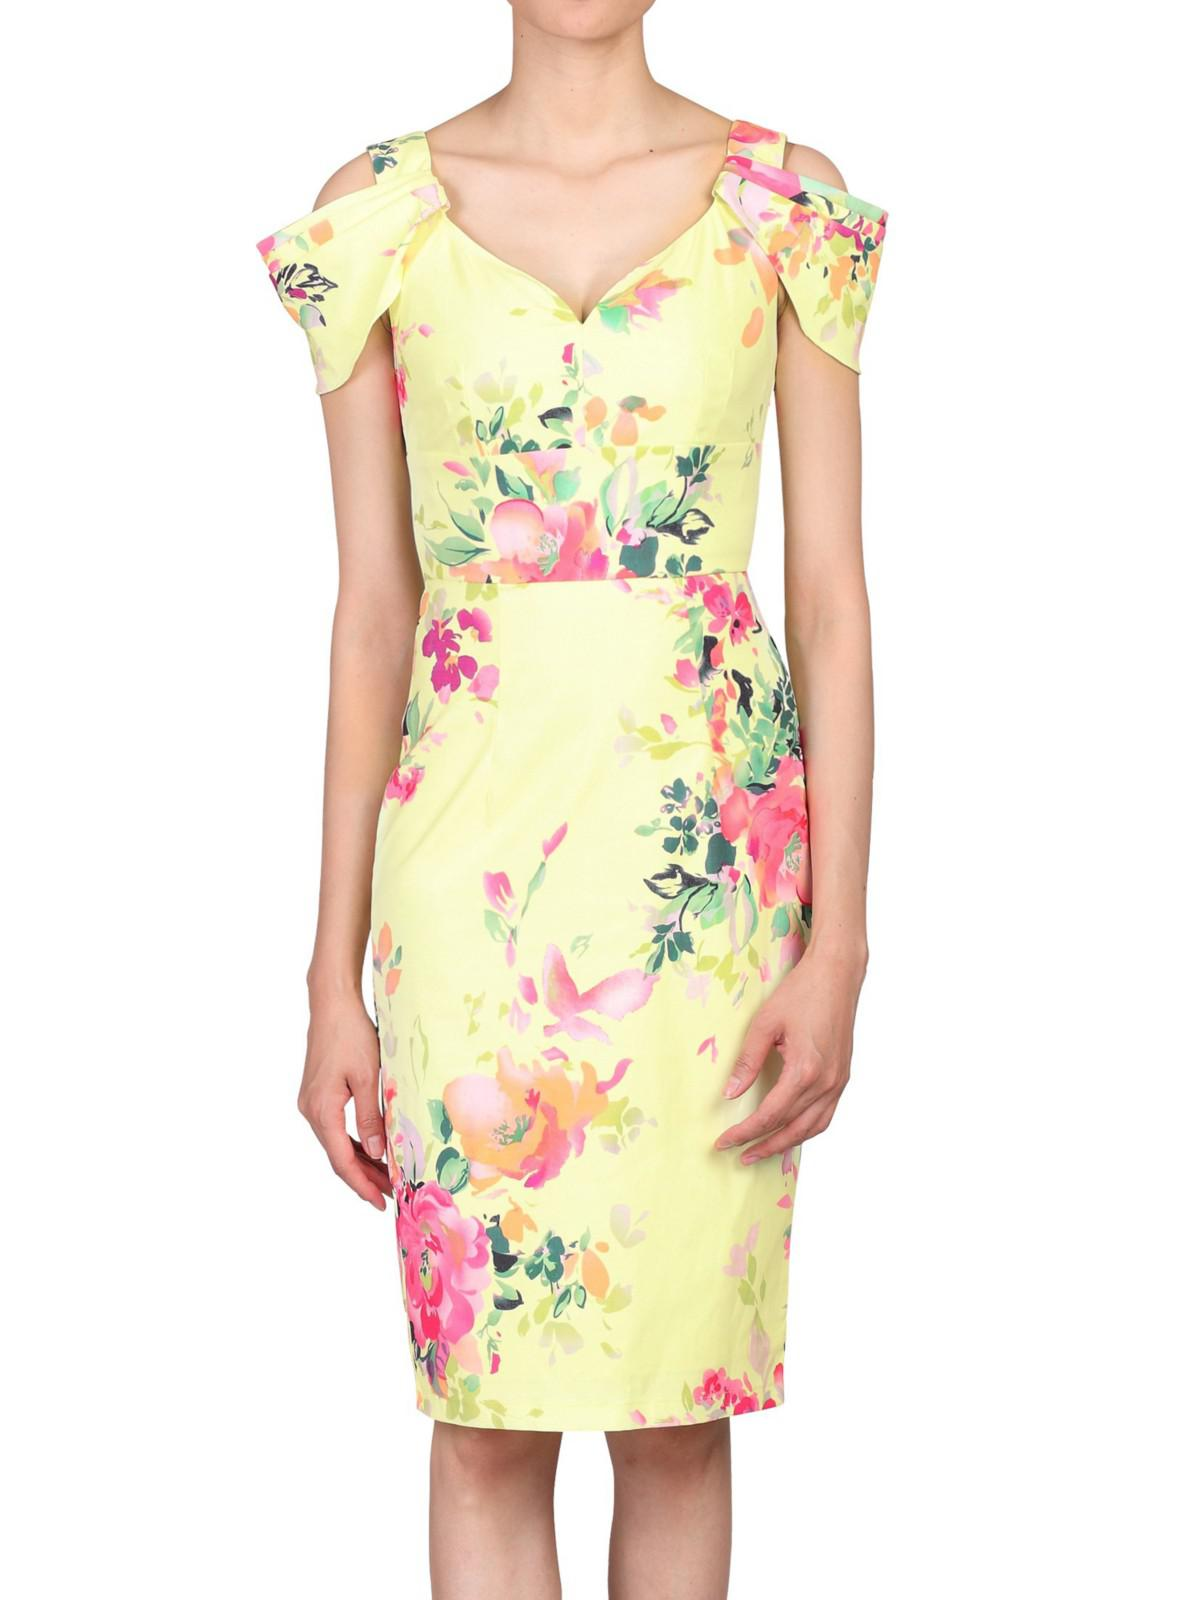 8f7e855e53aa Jolie Moi Floral Print Shoulder Structured Dress in Yellow - Lyst